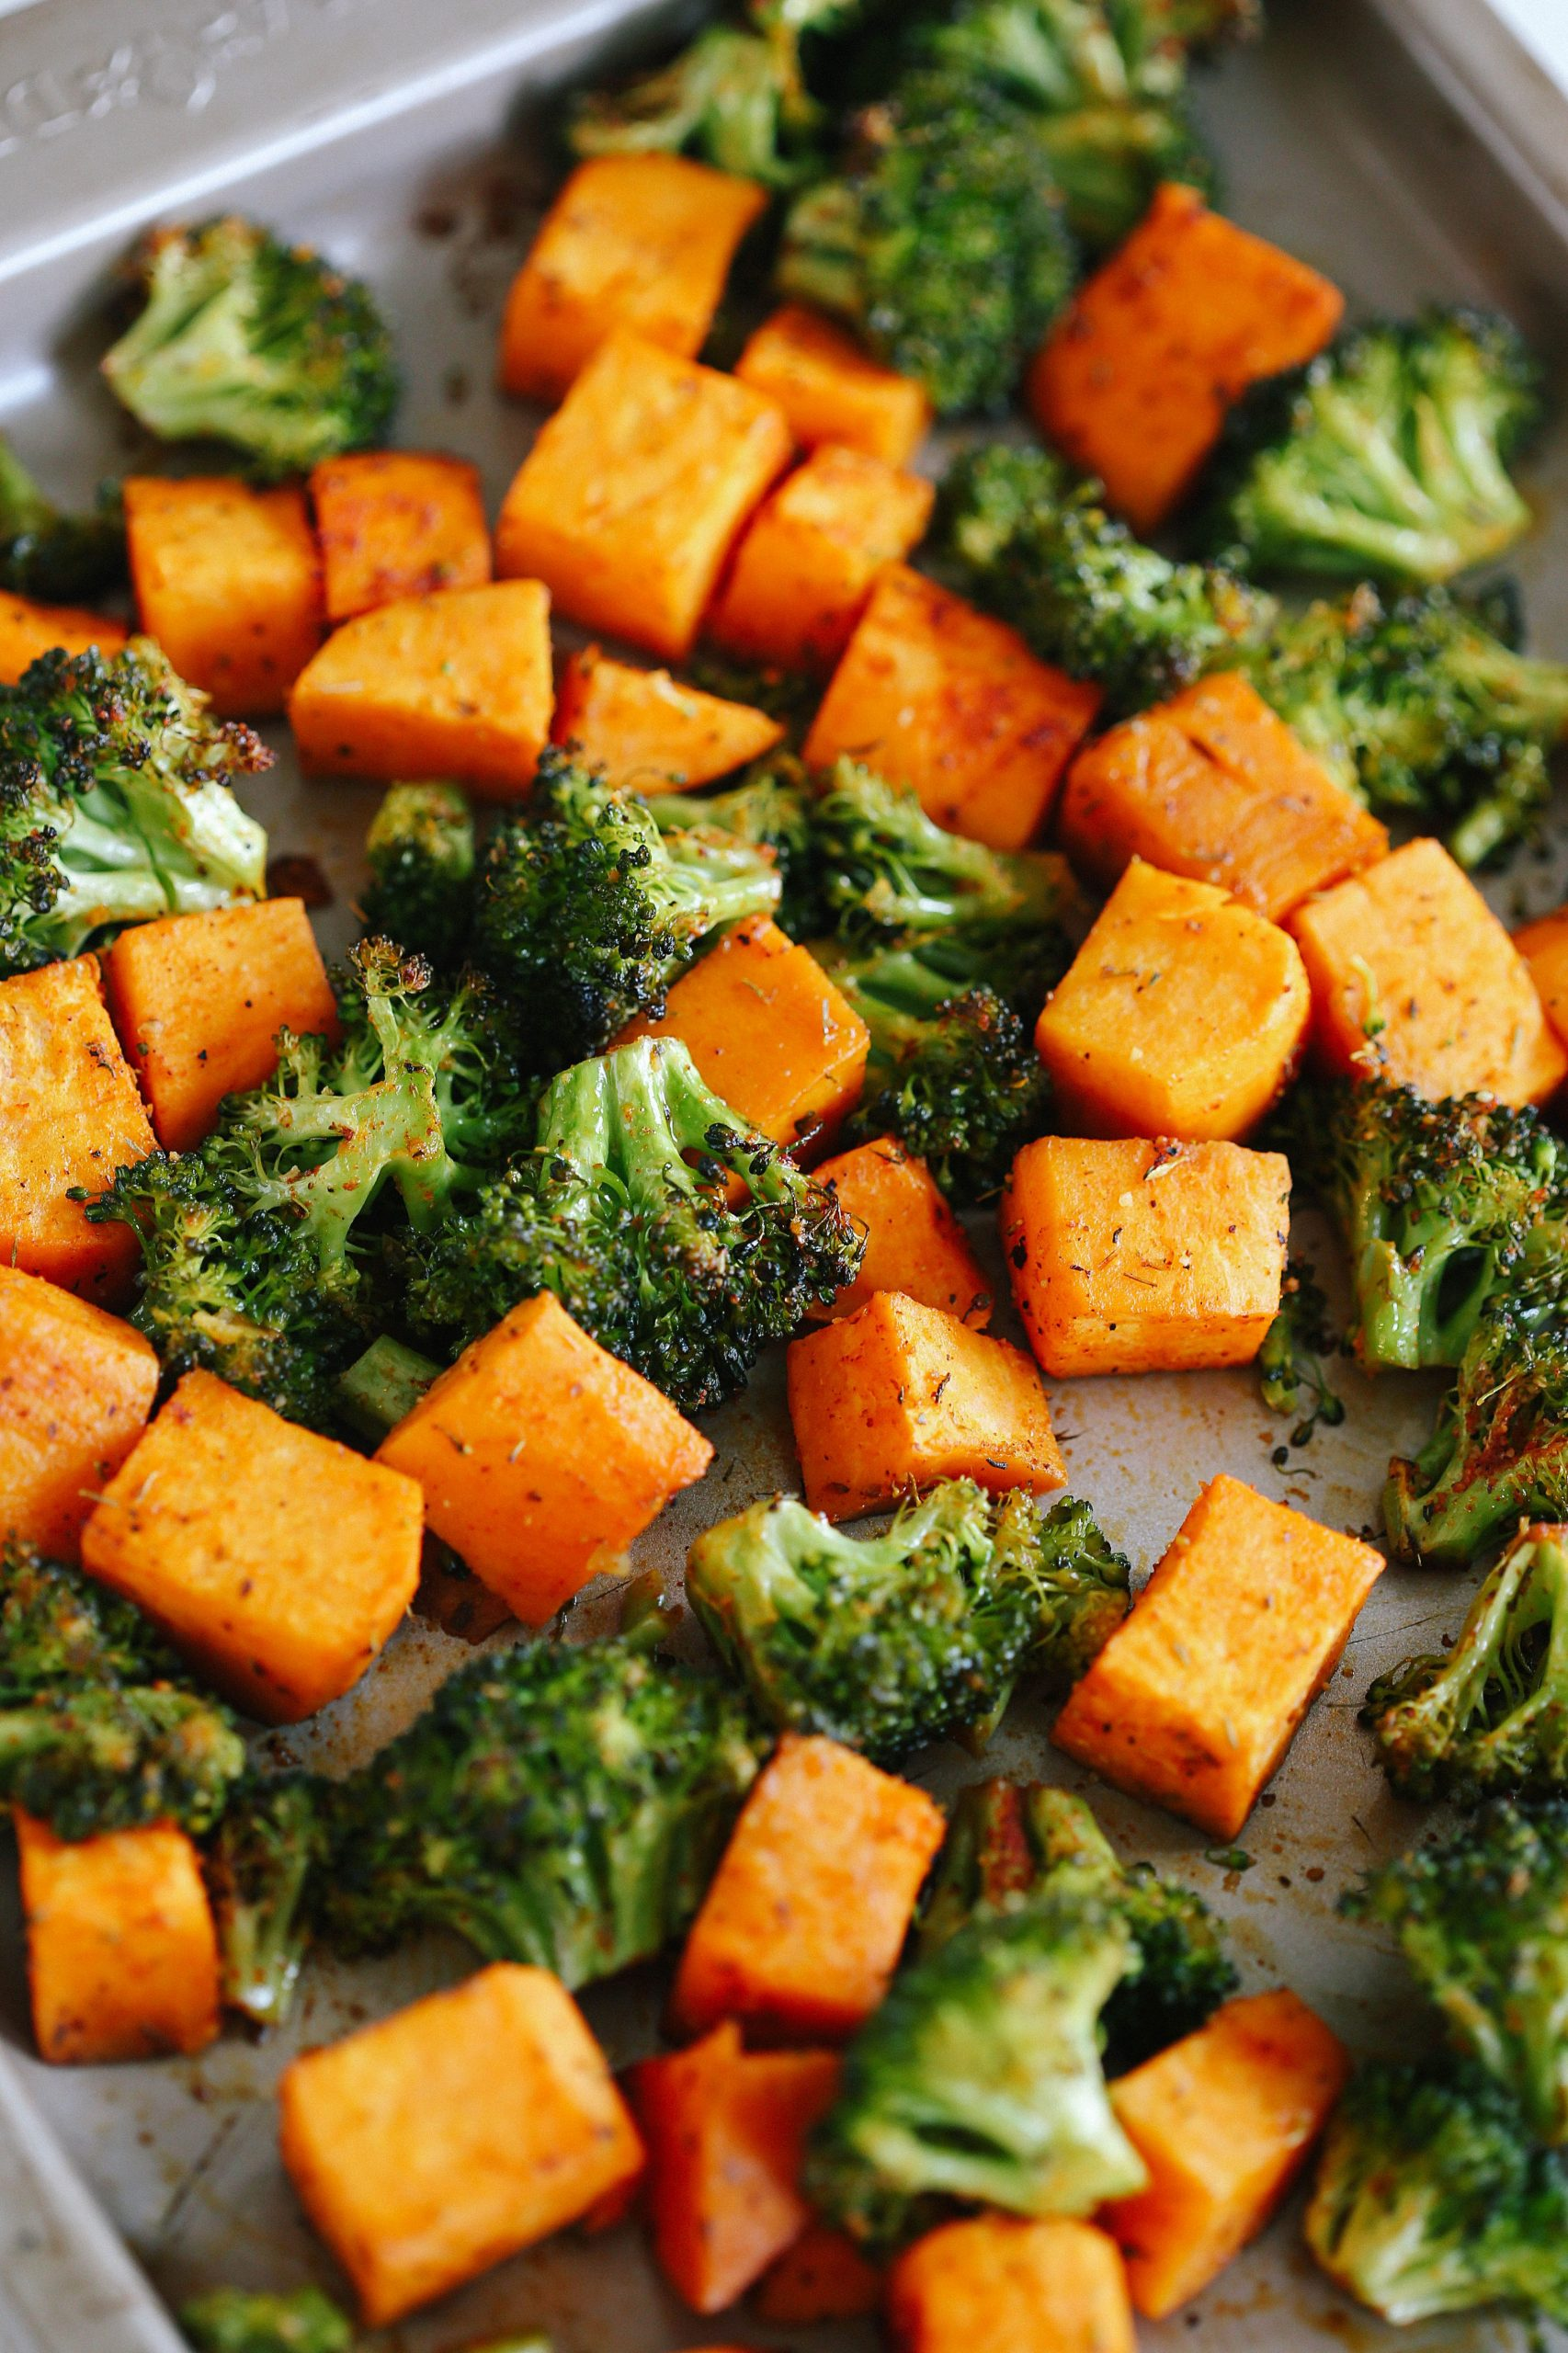 Perfectly Roasted Broccoli & Sweet Potatoes - Recipes Vegetable Side Dishes